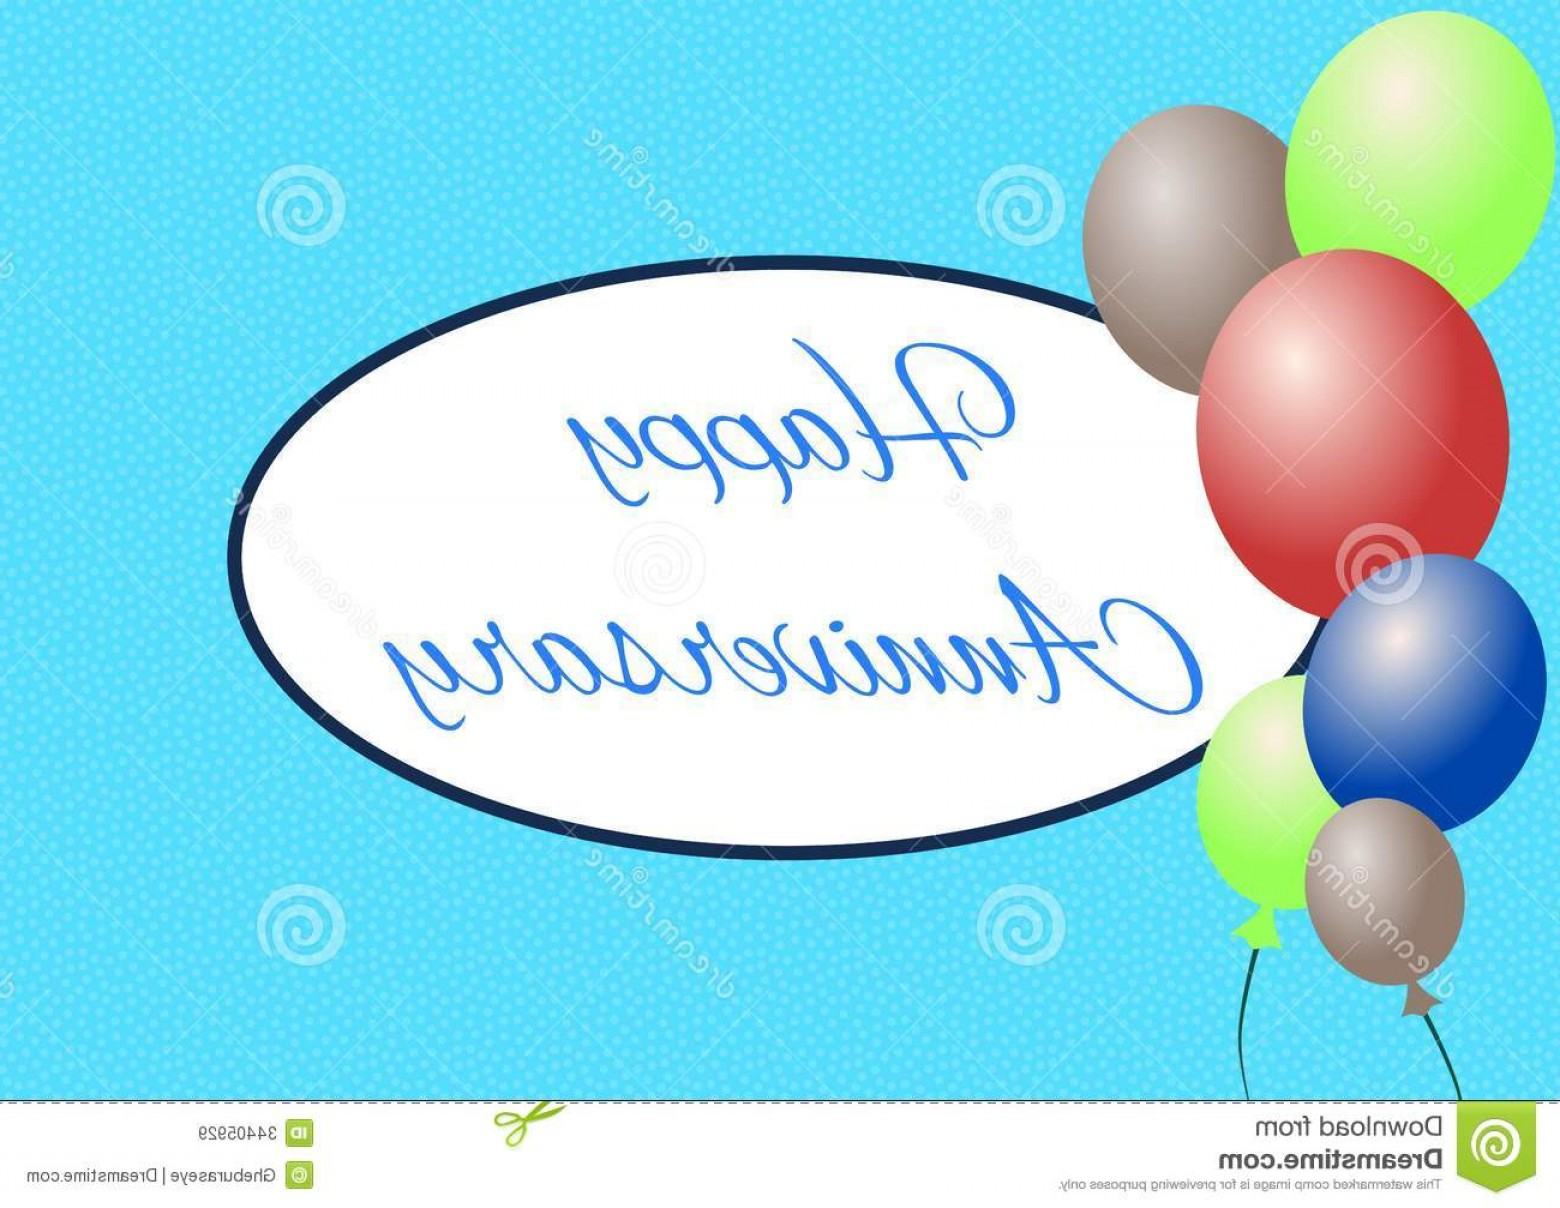 Happy Workplace Anniversary Vector: Royalty Free Stock Images Happy Anniversay Nice Anniversary Greeting Card Pois Balloons Image